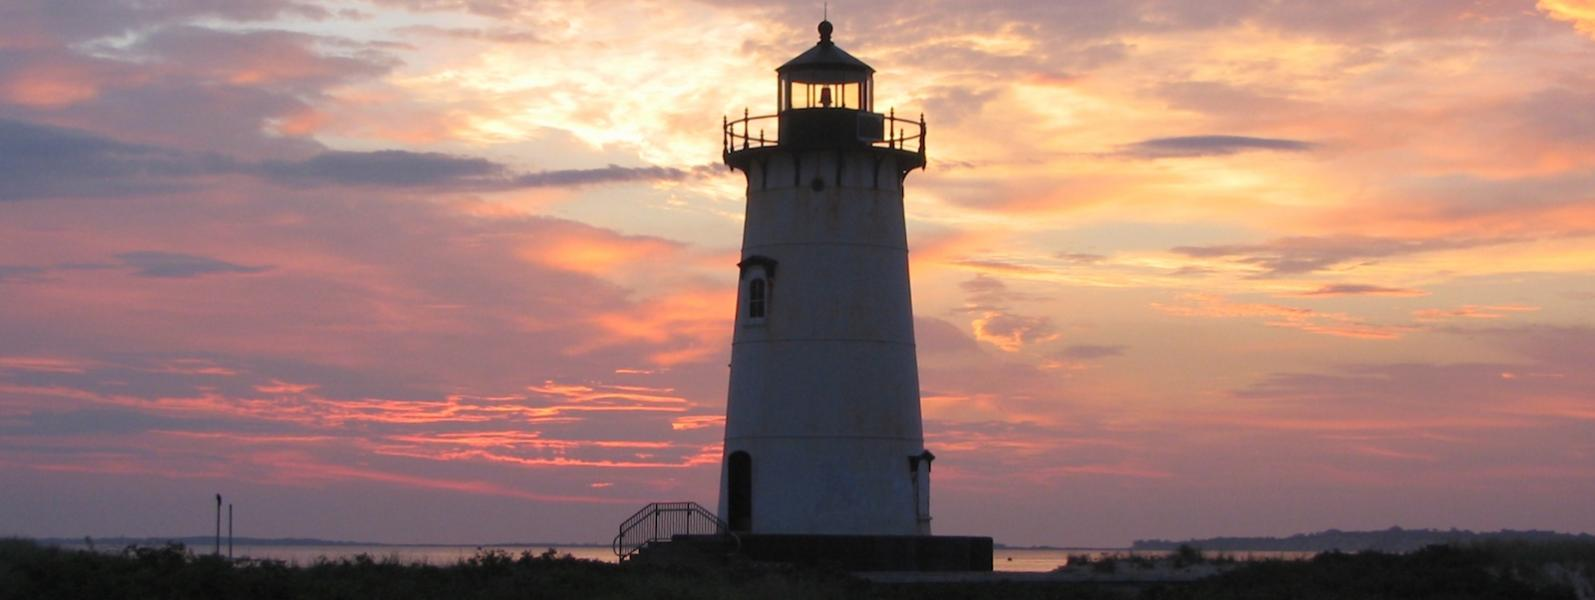 Edgartown Lighthouse at Sunset